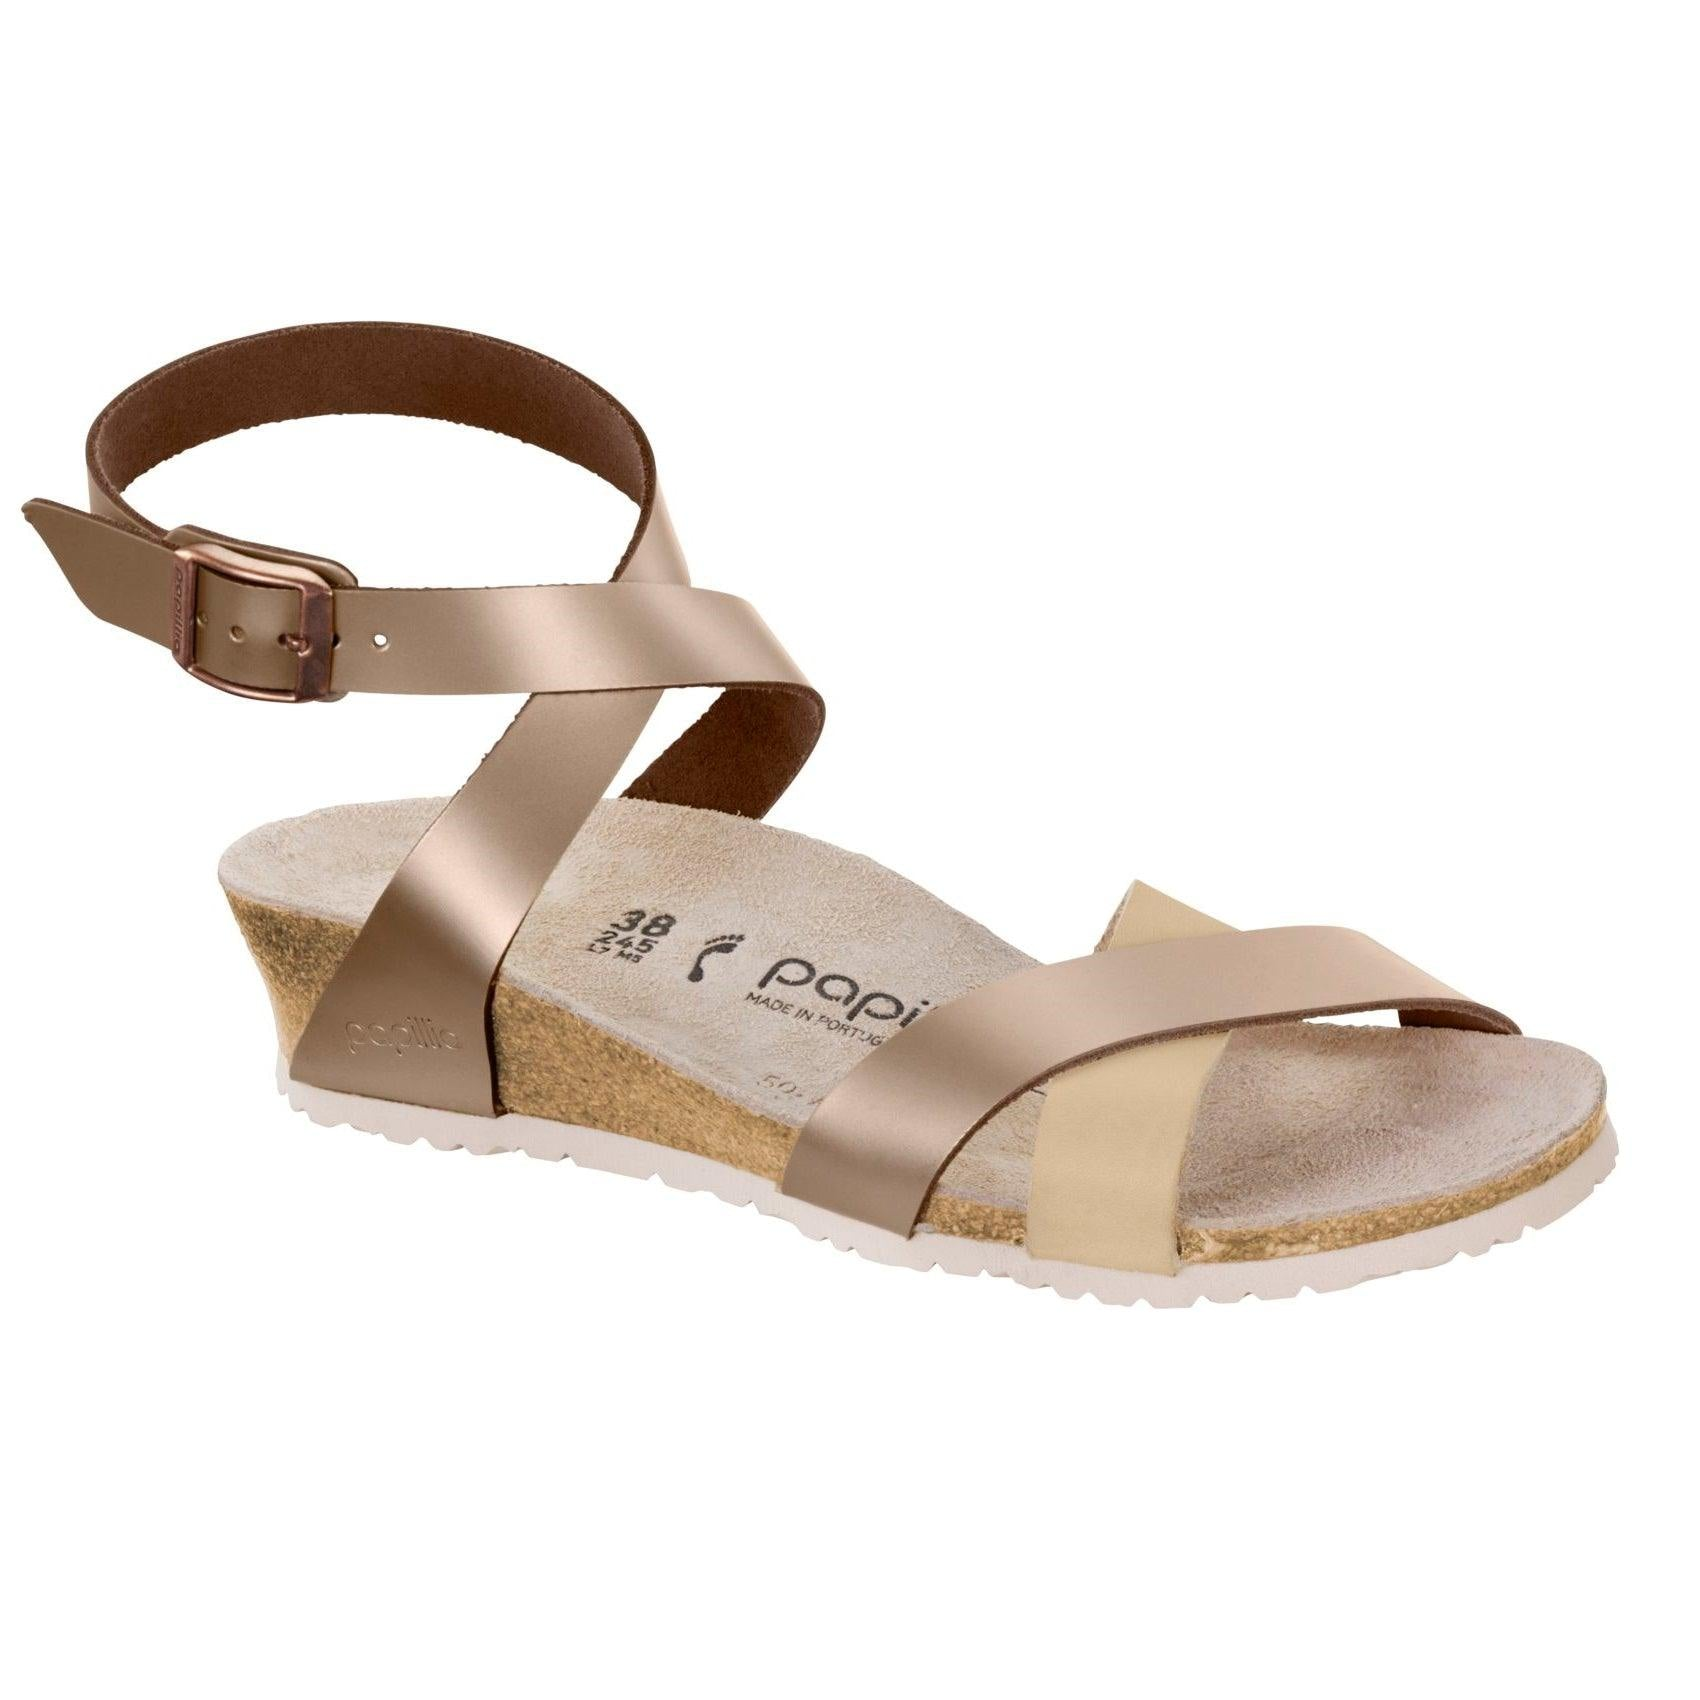 Women's Papillio Lola Wedge - Metallic Rose Leather